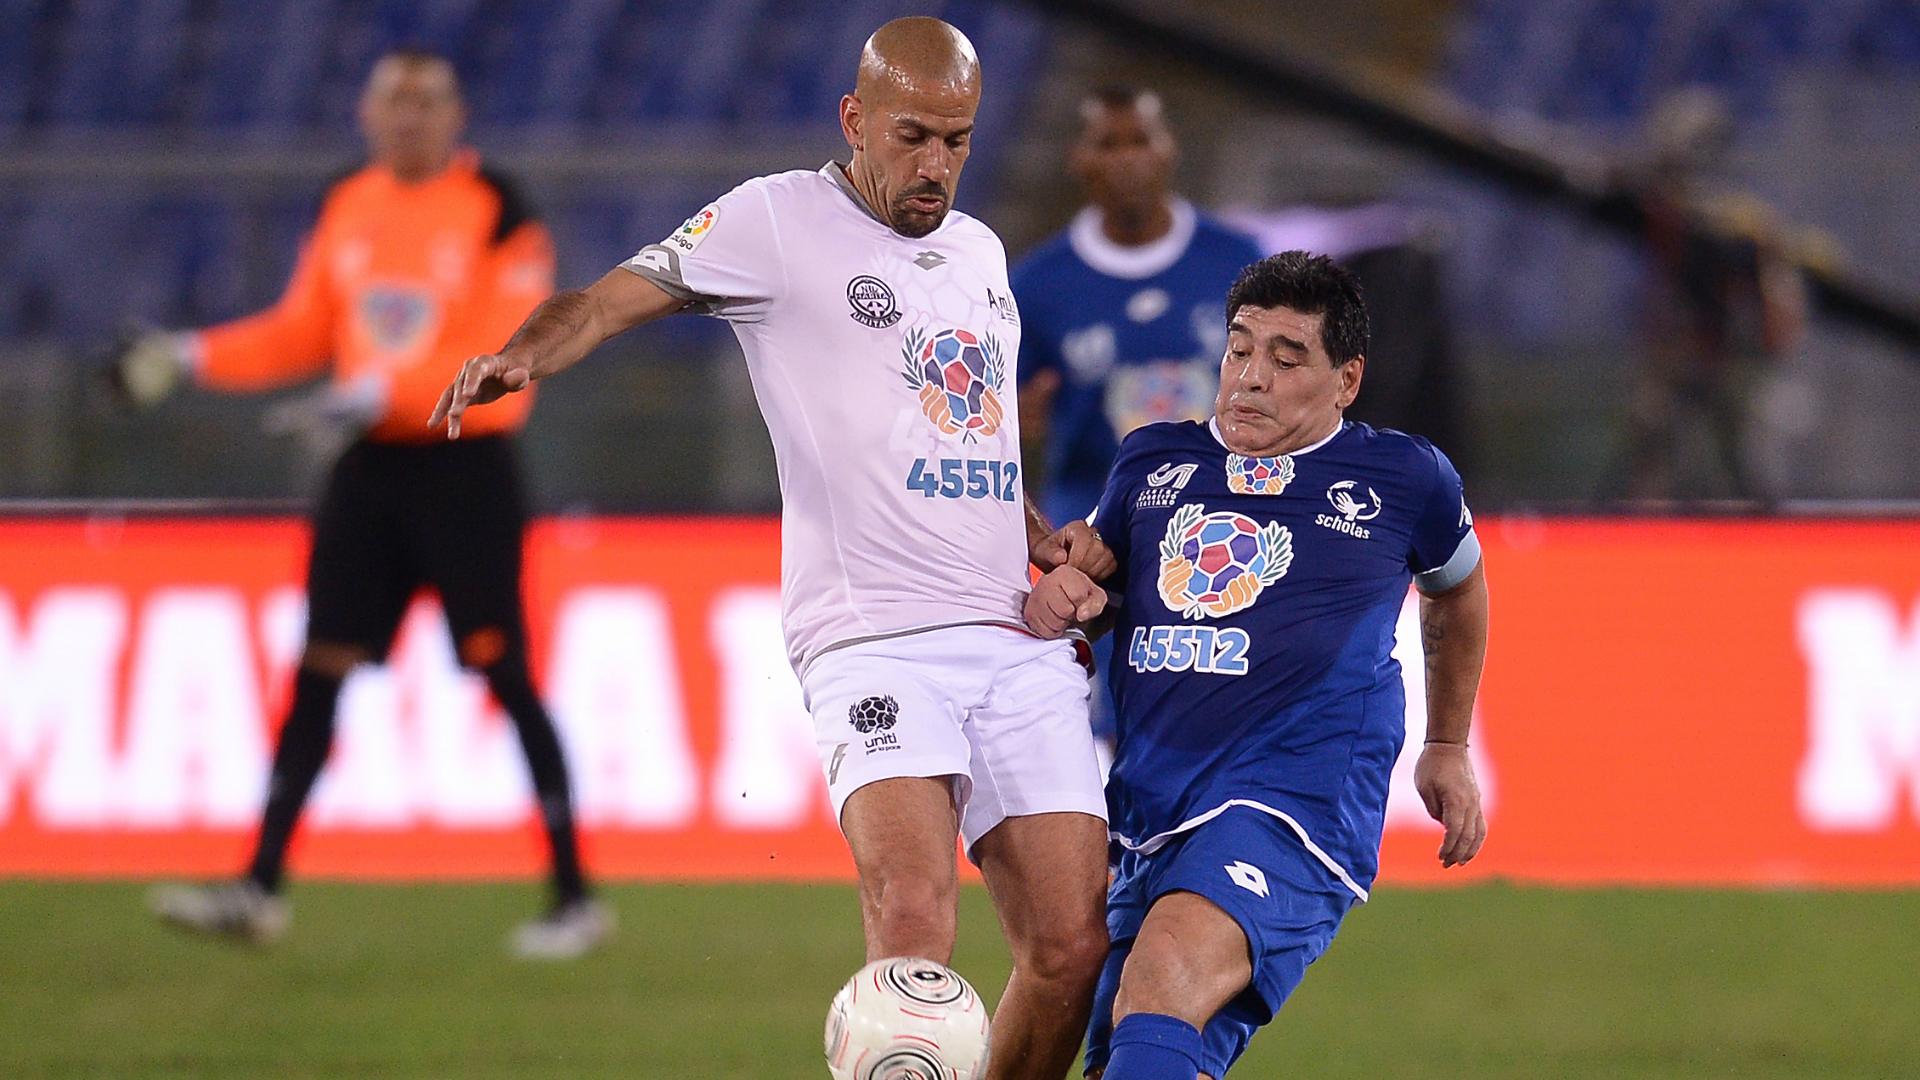 Juan Sebastian Veron and Diego Maradona playing in a charity game.